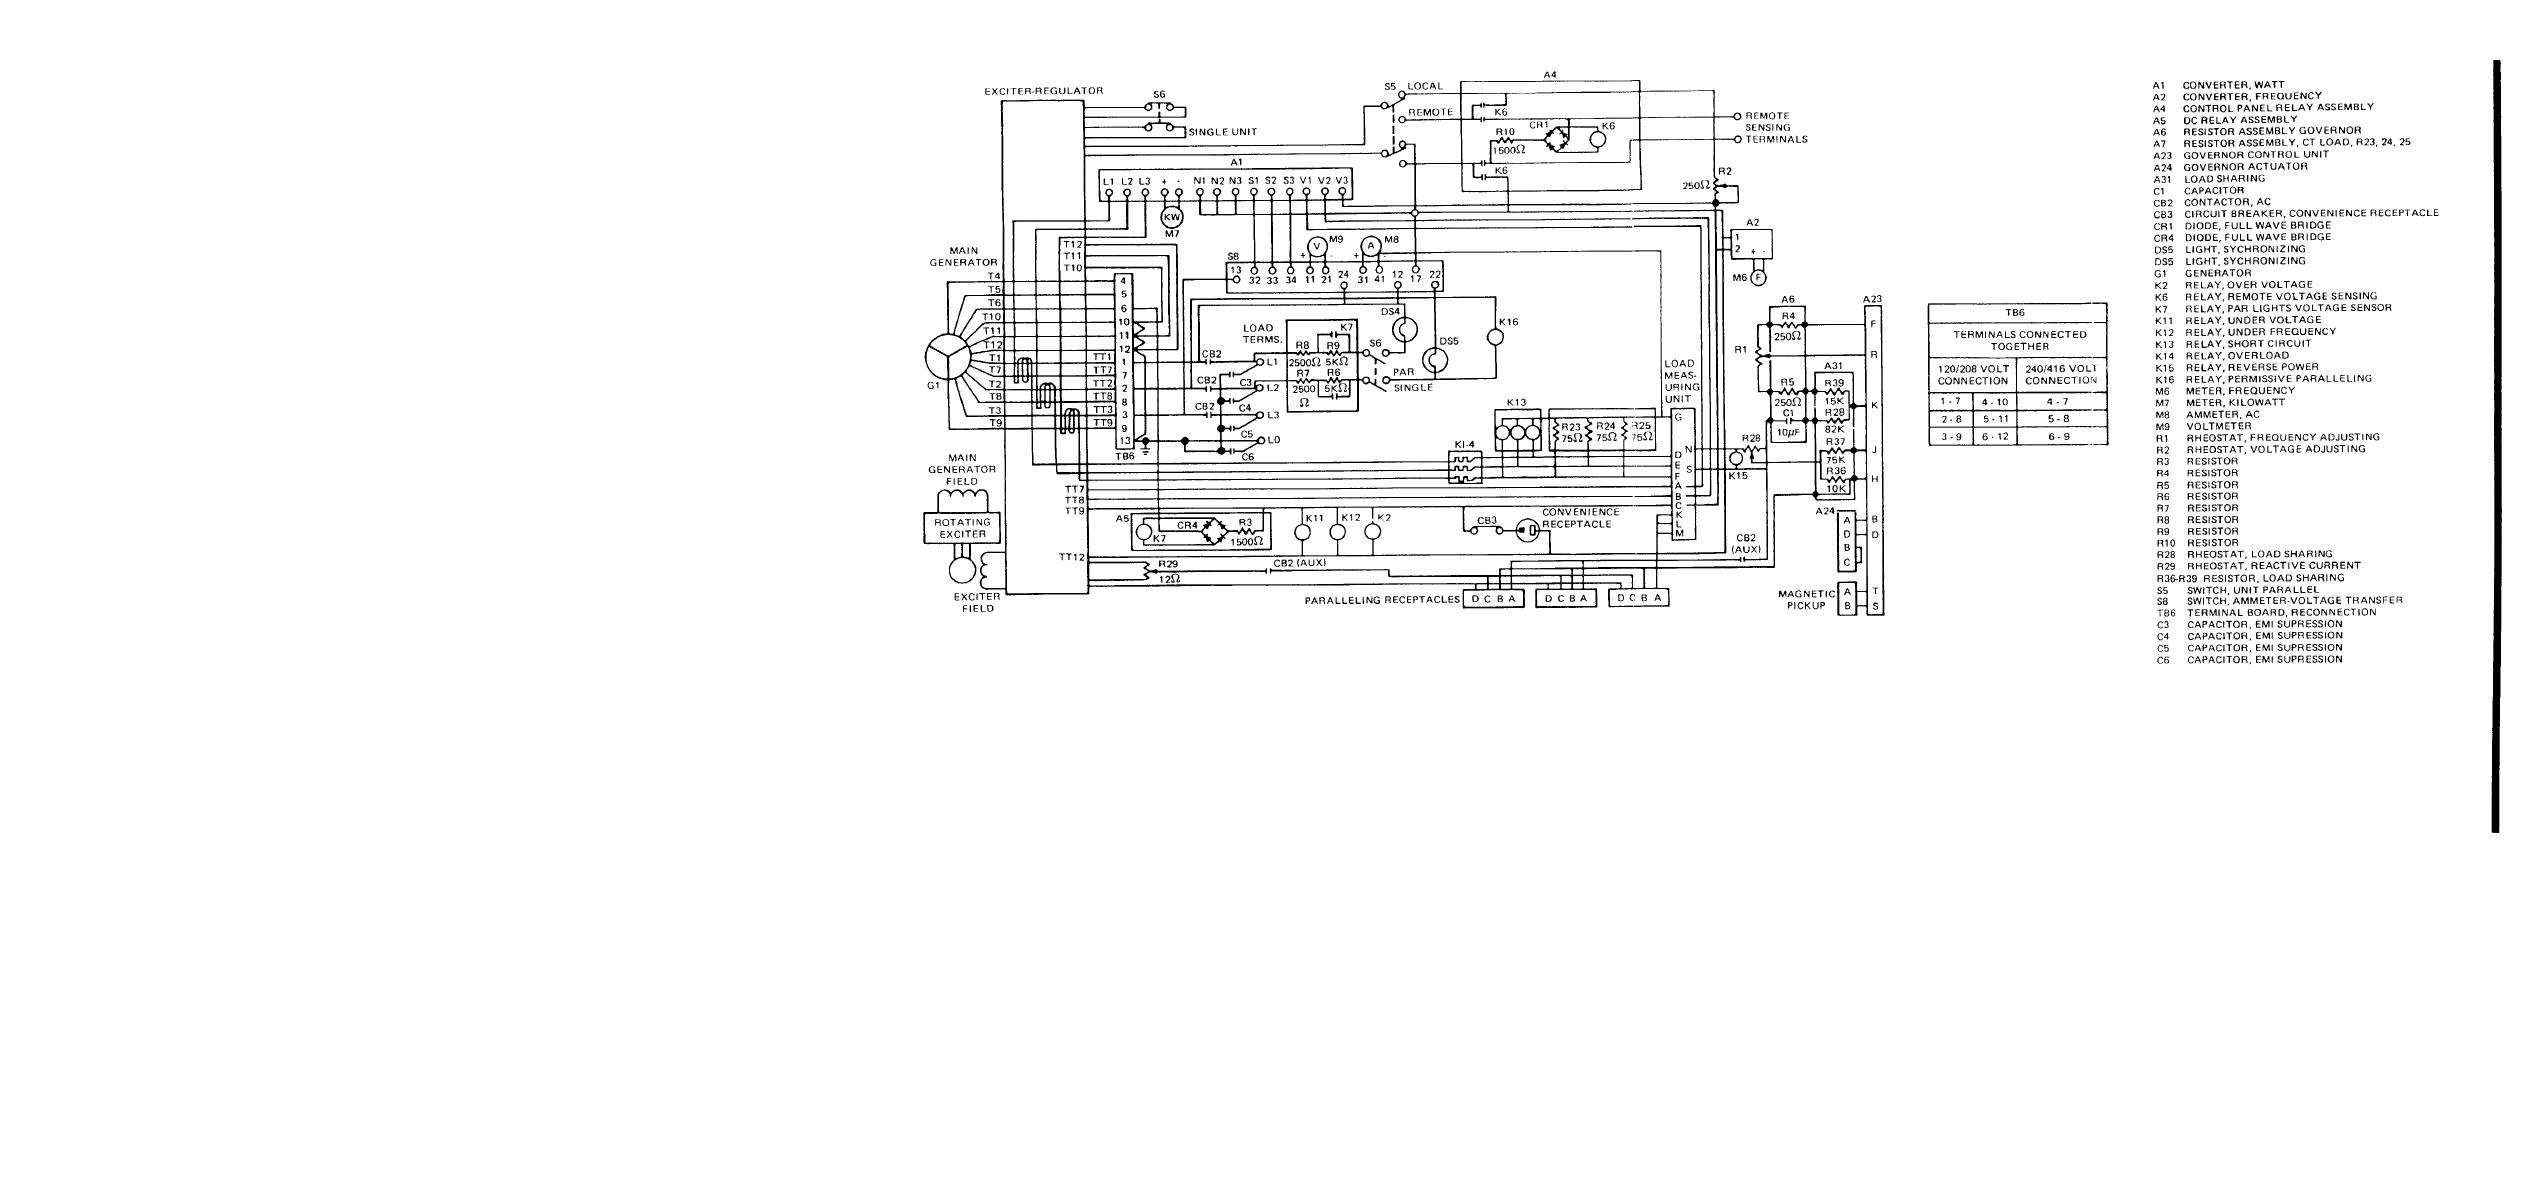 Fo 2 Ac Schematic Diagram 15 And 30 Kw Precise Generator Sets Dwg No 84 805